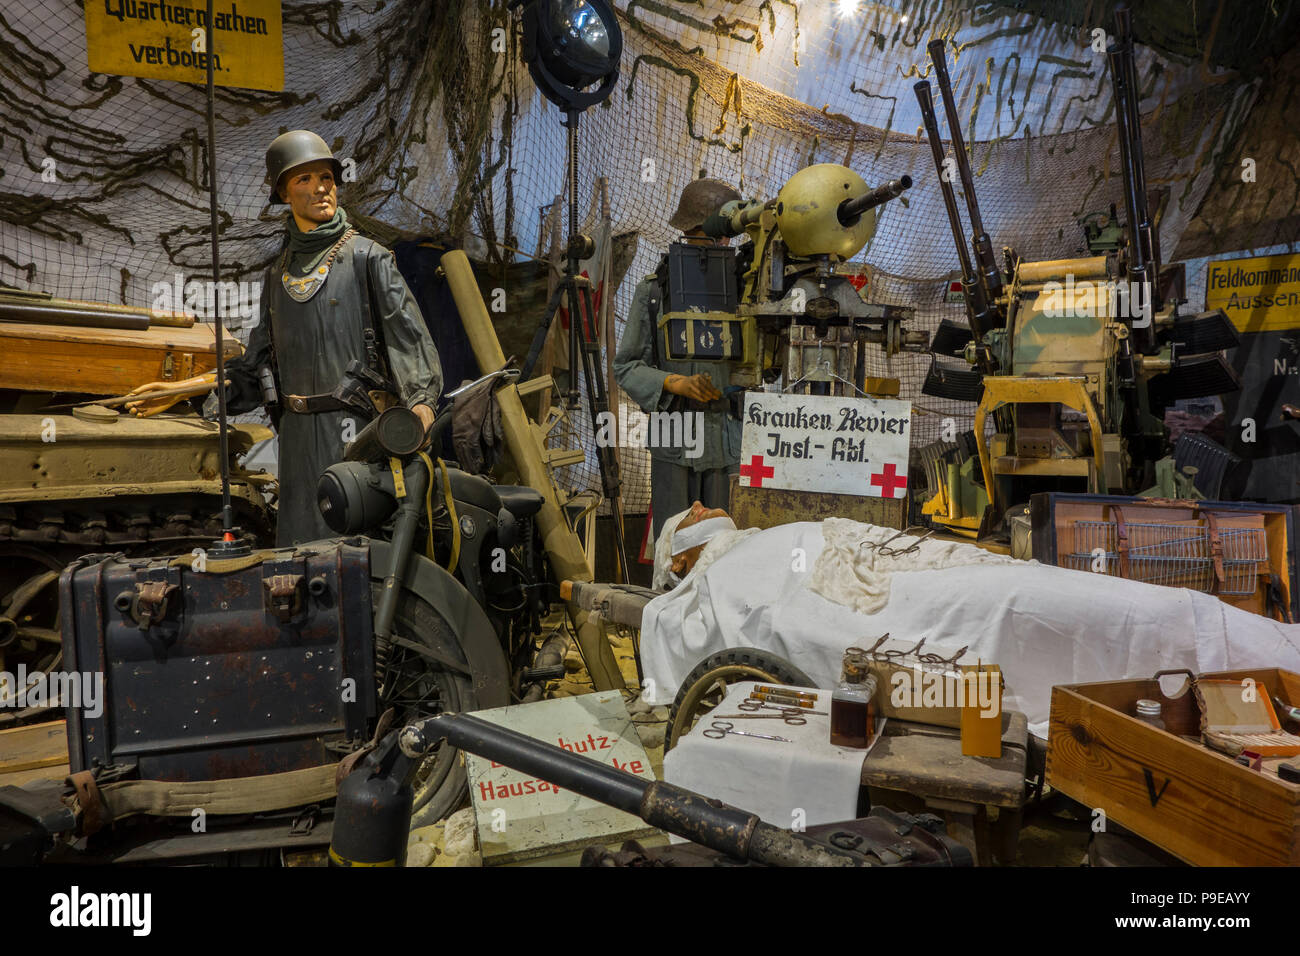 Diorama Of German World War Two Dressing Station At The D Day Omaha Museum At Vierville Sur Mer Calvados Normandy France Stock Photo Alamy